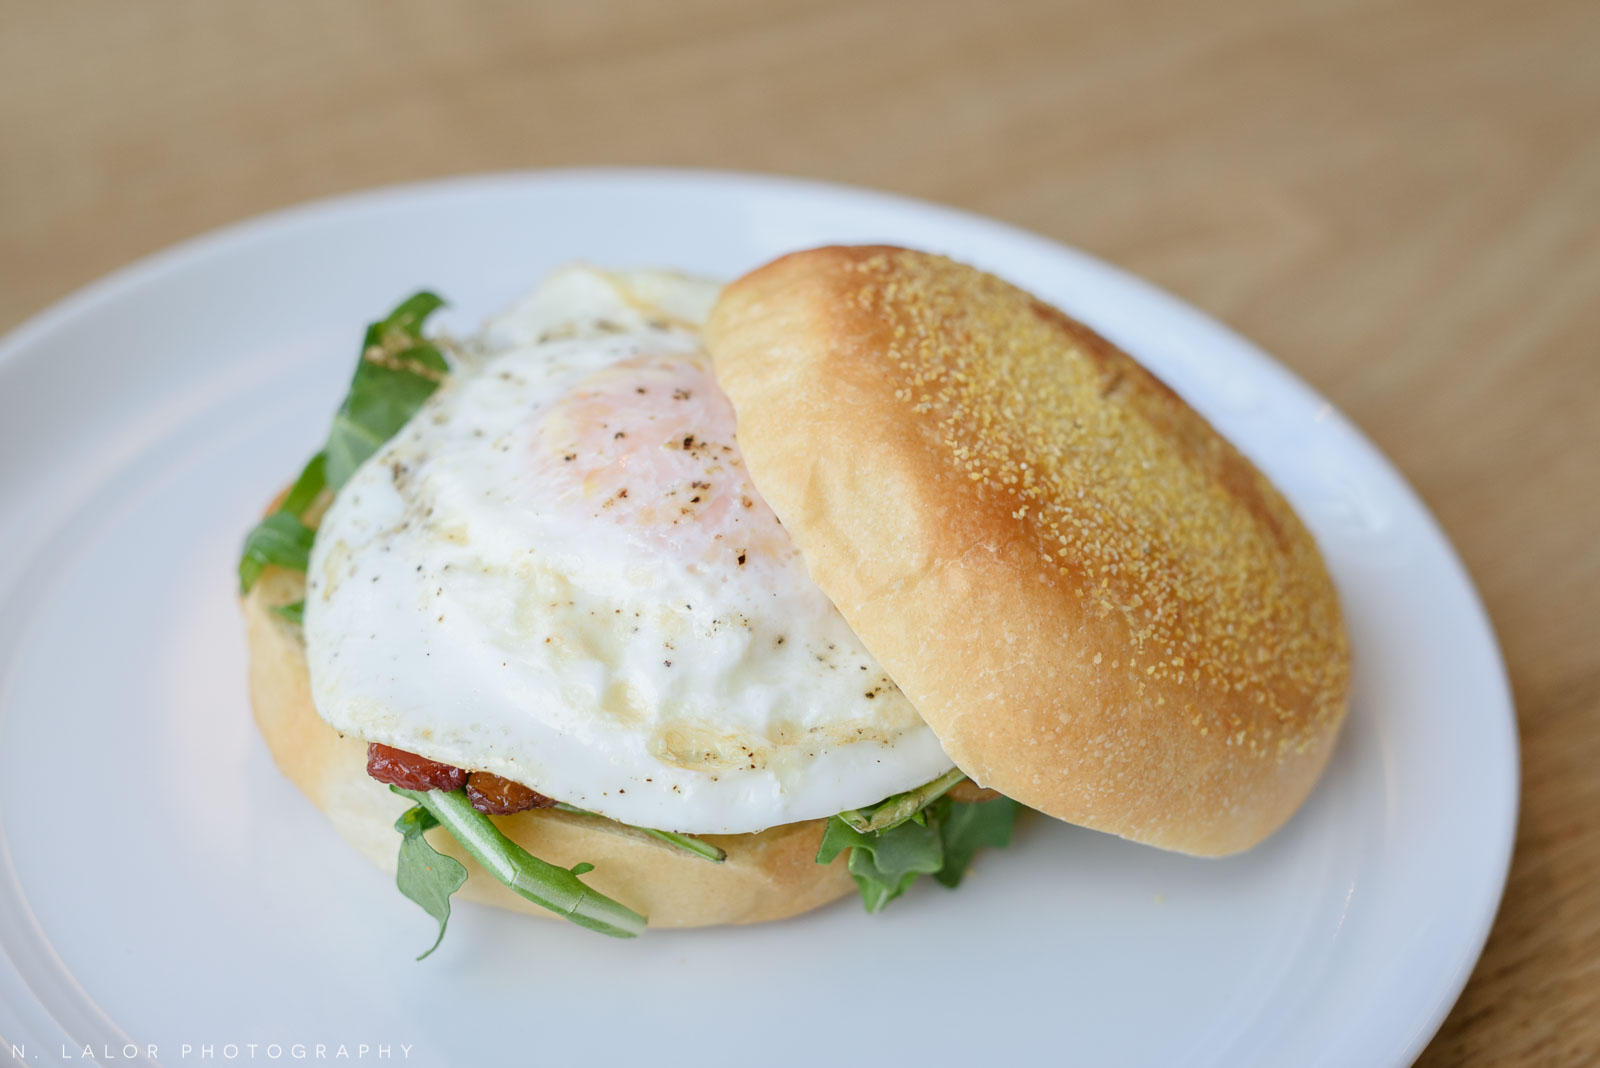 Breakfast sandwich with egg and bacon. Roost Darien, small business photos by N. Lalor Photography.